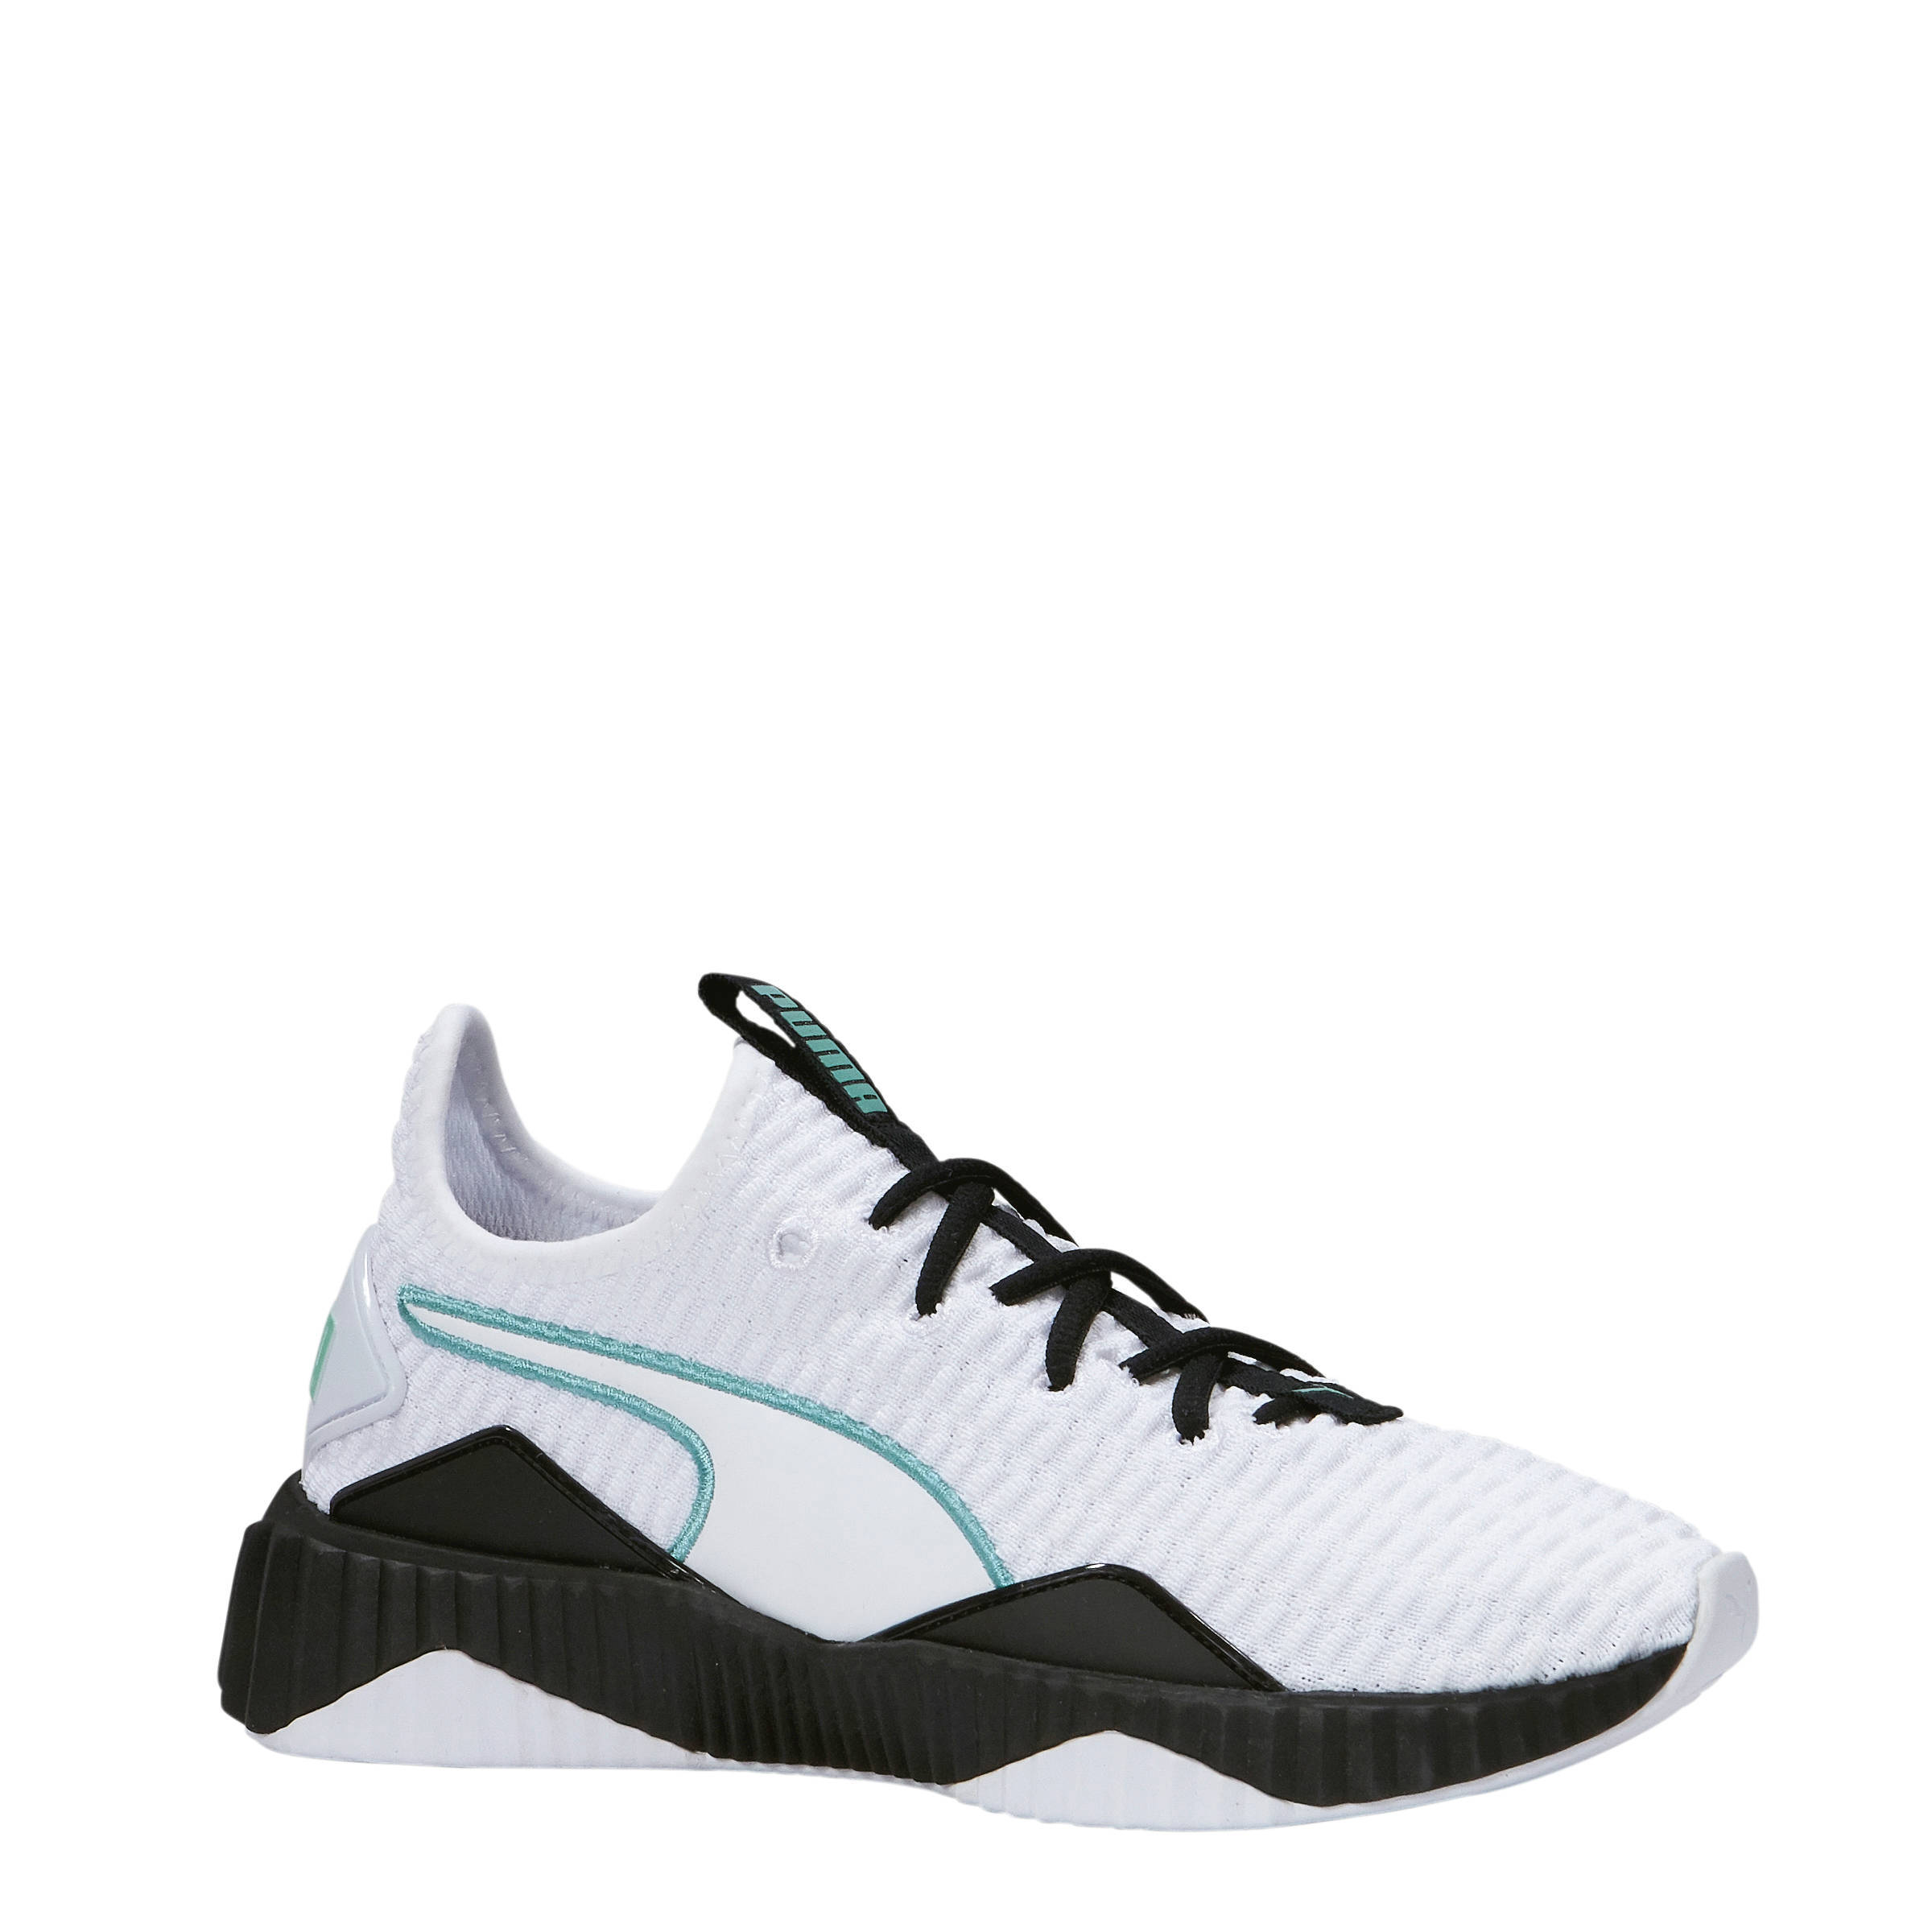 Puma Defy Wn's sneakers (dames)